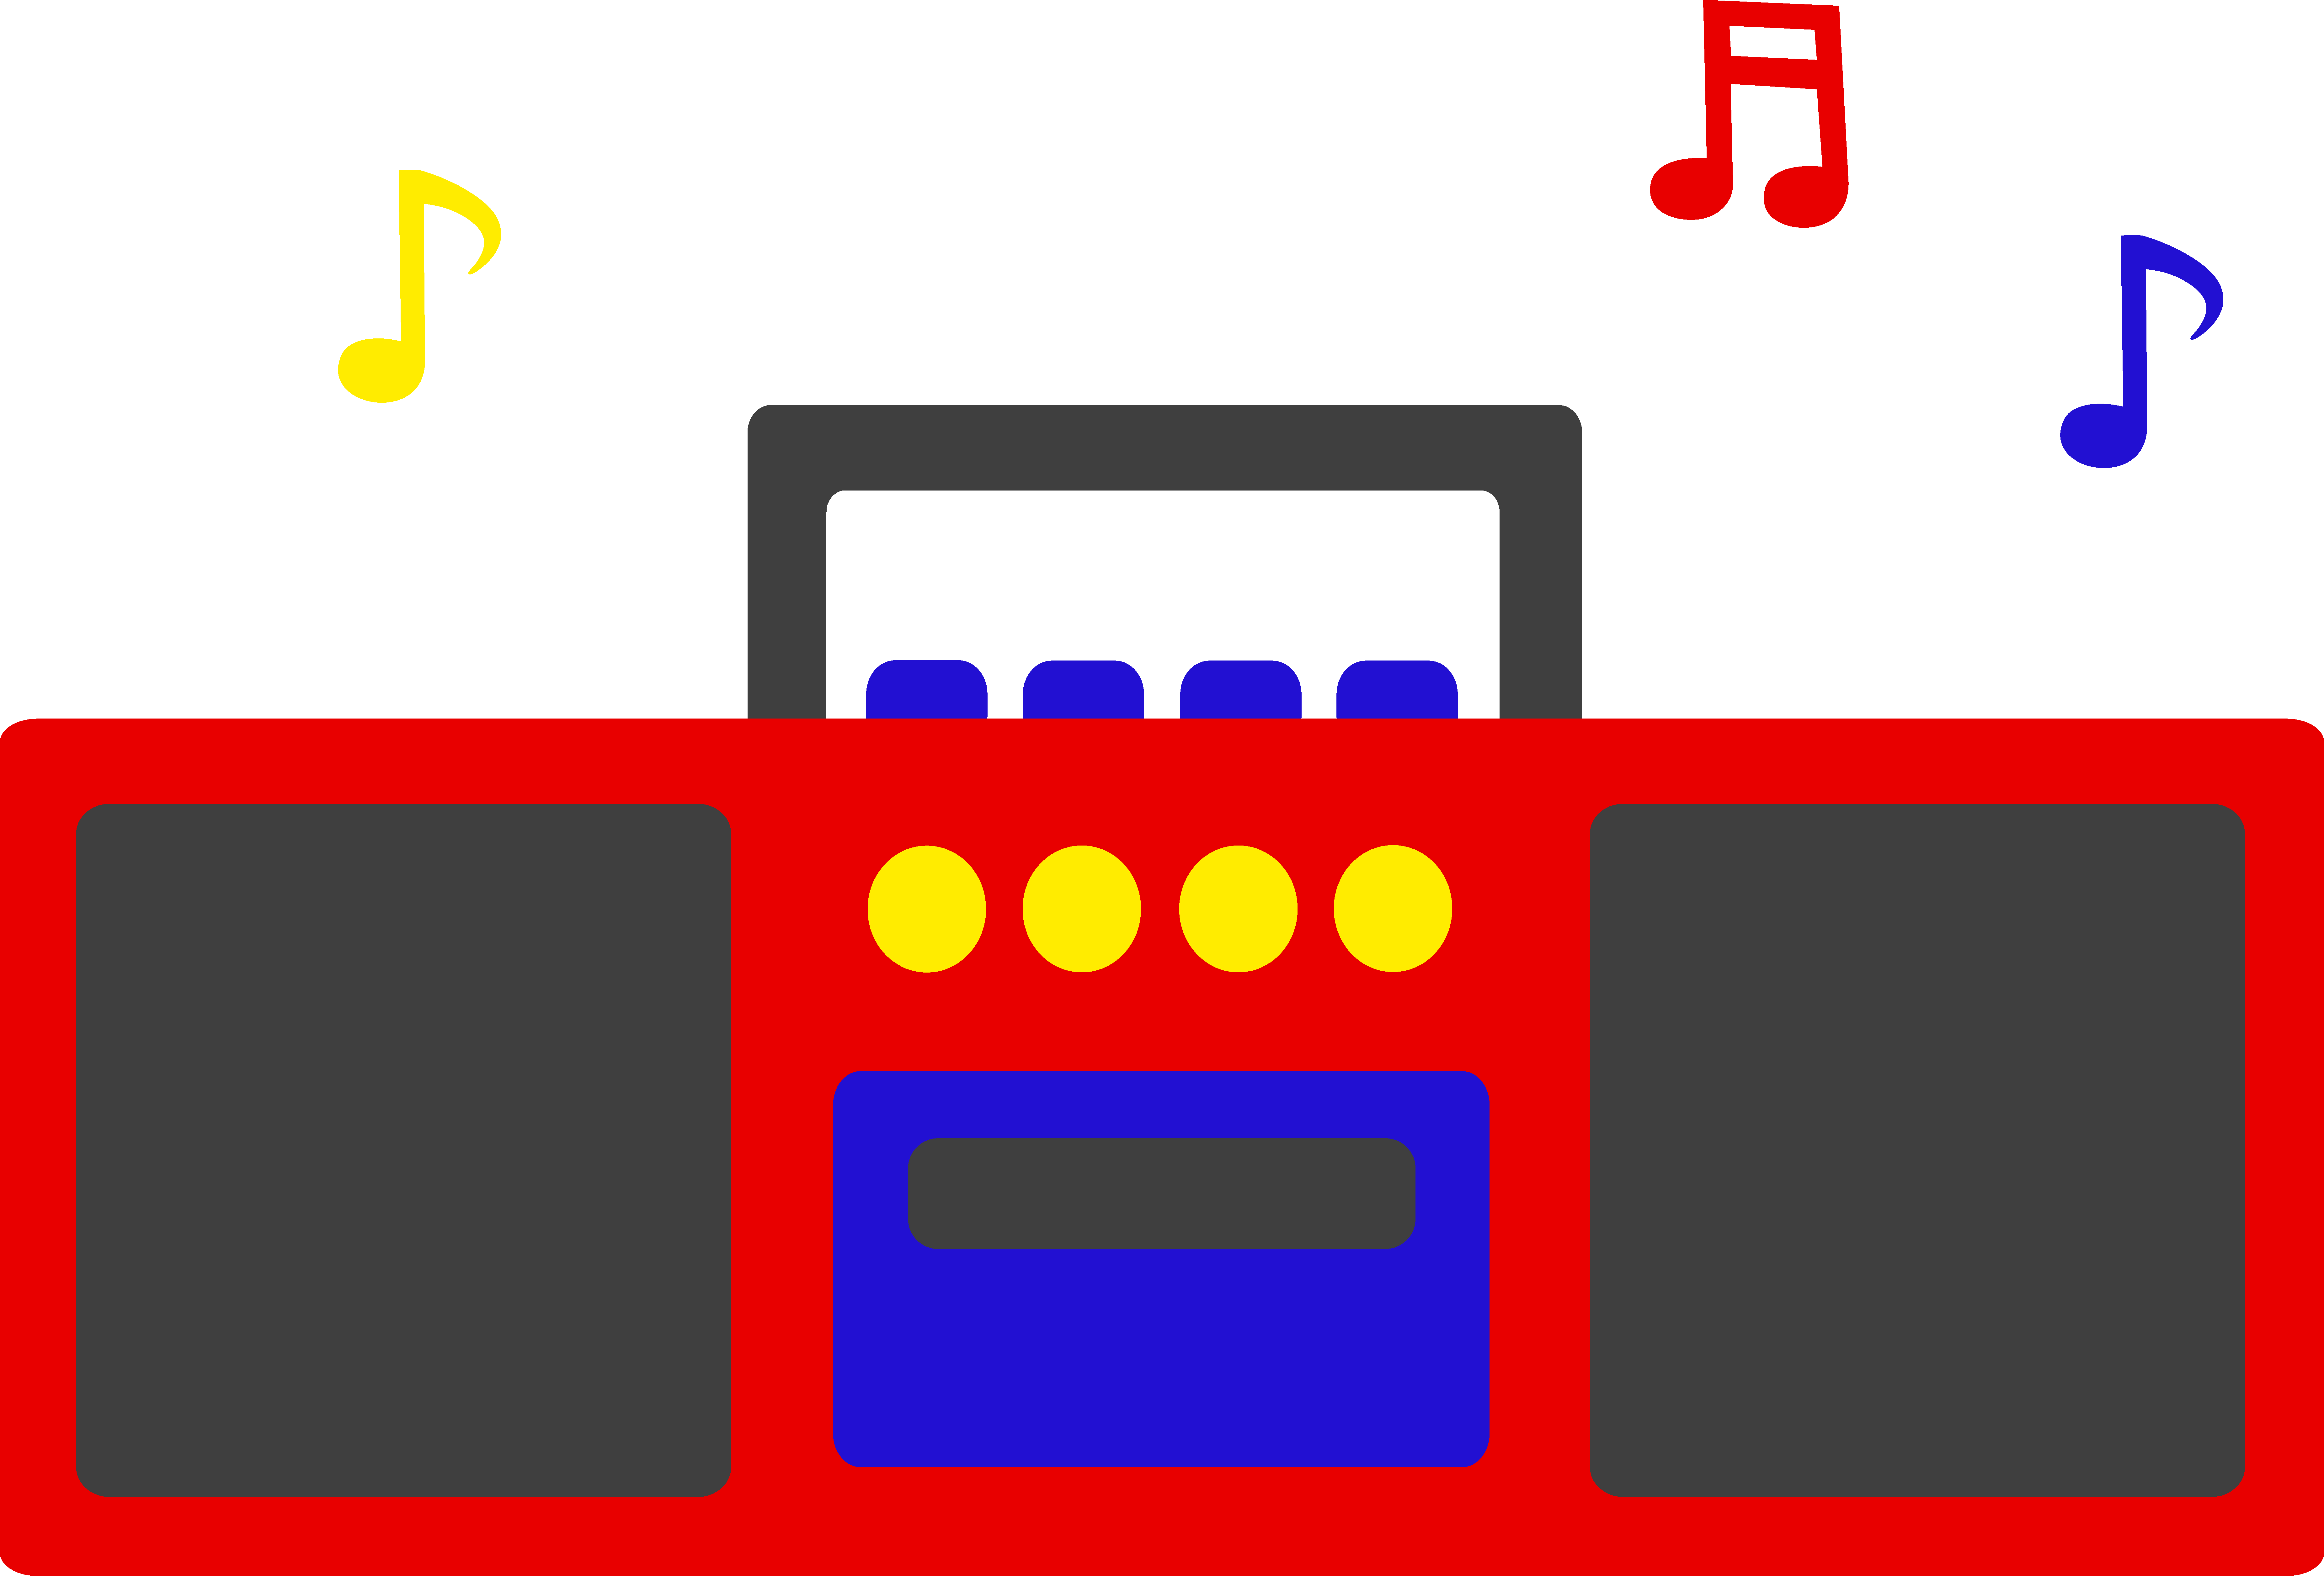 Cassette clipart red. Free radio cliparts download